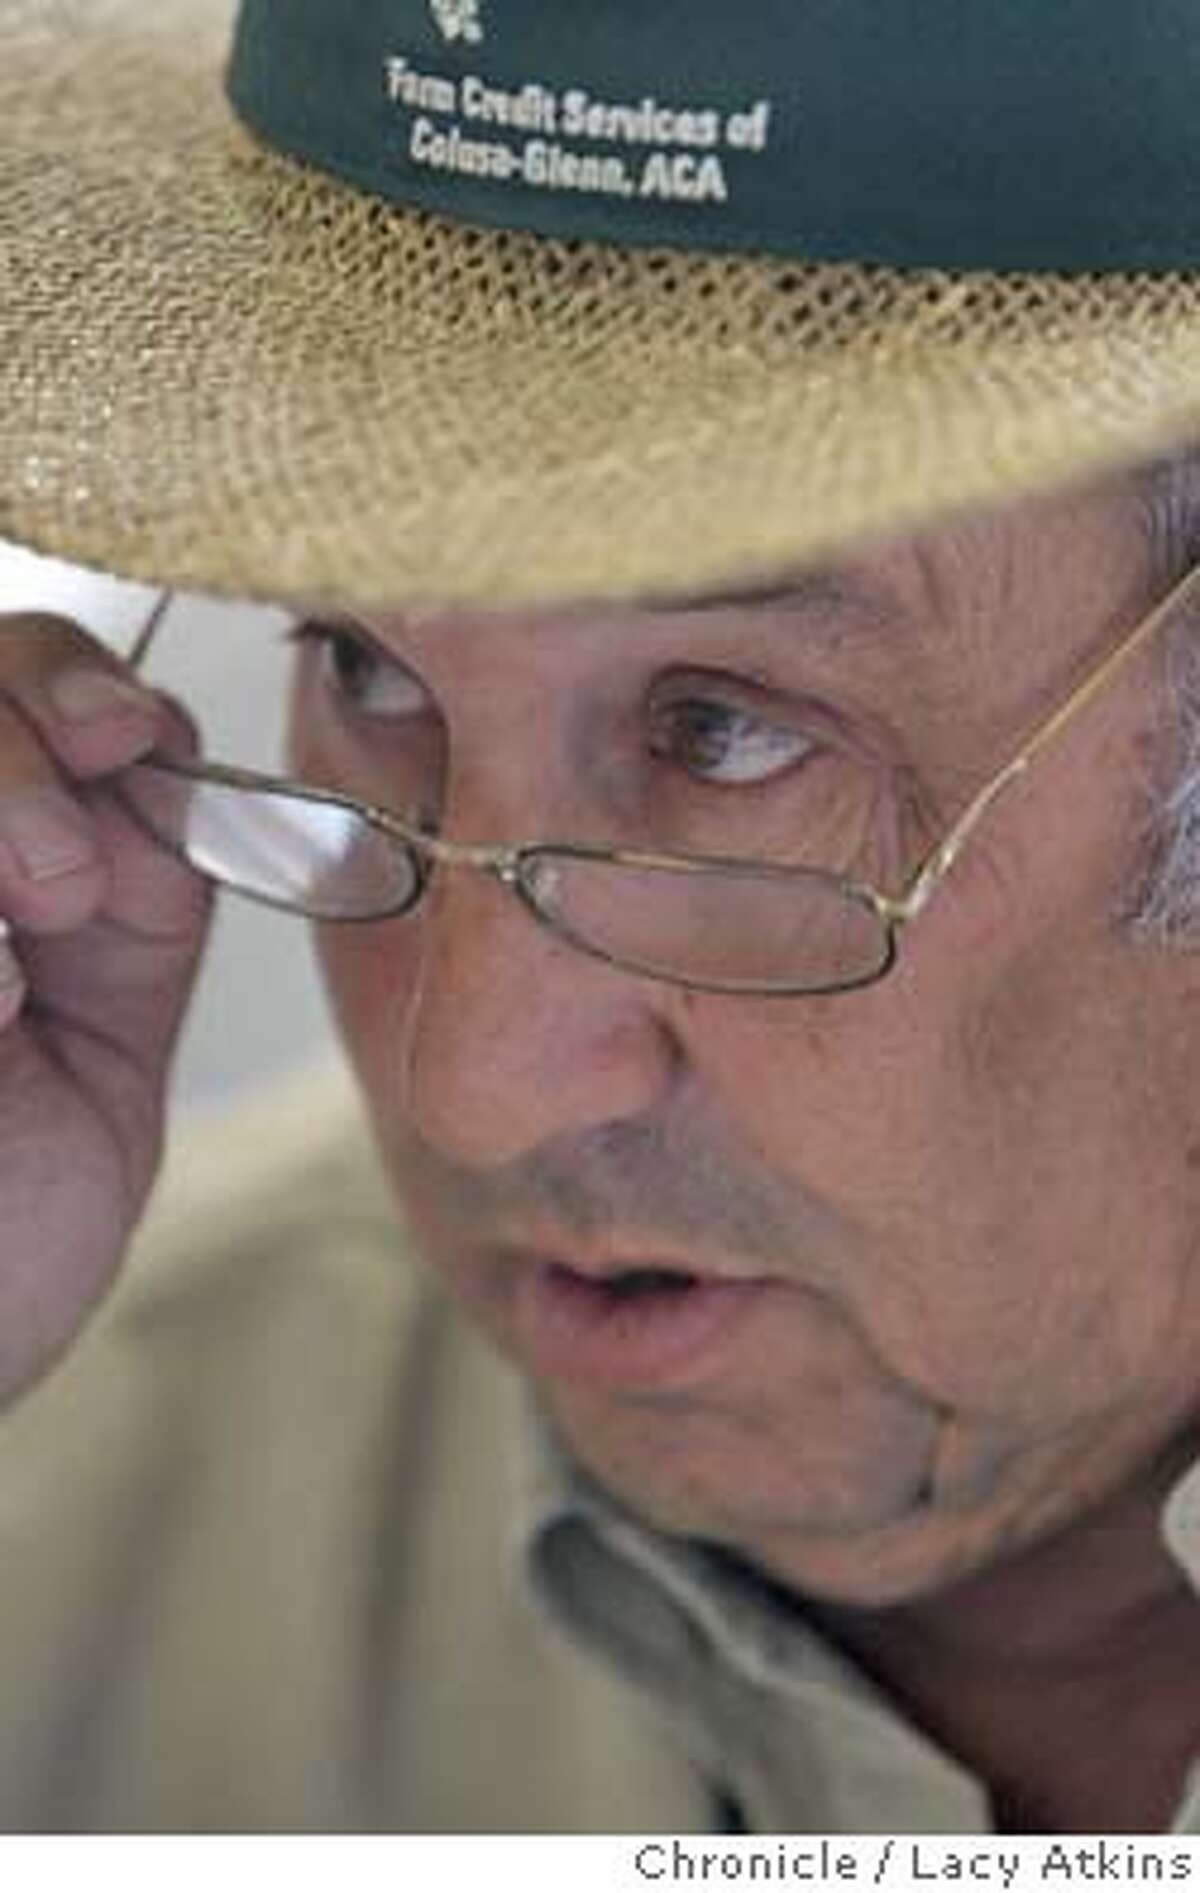 Joe Carrancho, a rice farmers state their views of the California Rice Commission approving a plan to plant genetically engineered rice, at their farms in Glenn County, April 6, 2004. LACY ATKINS / The Chronicle